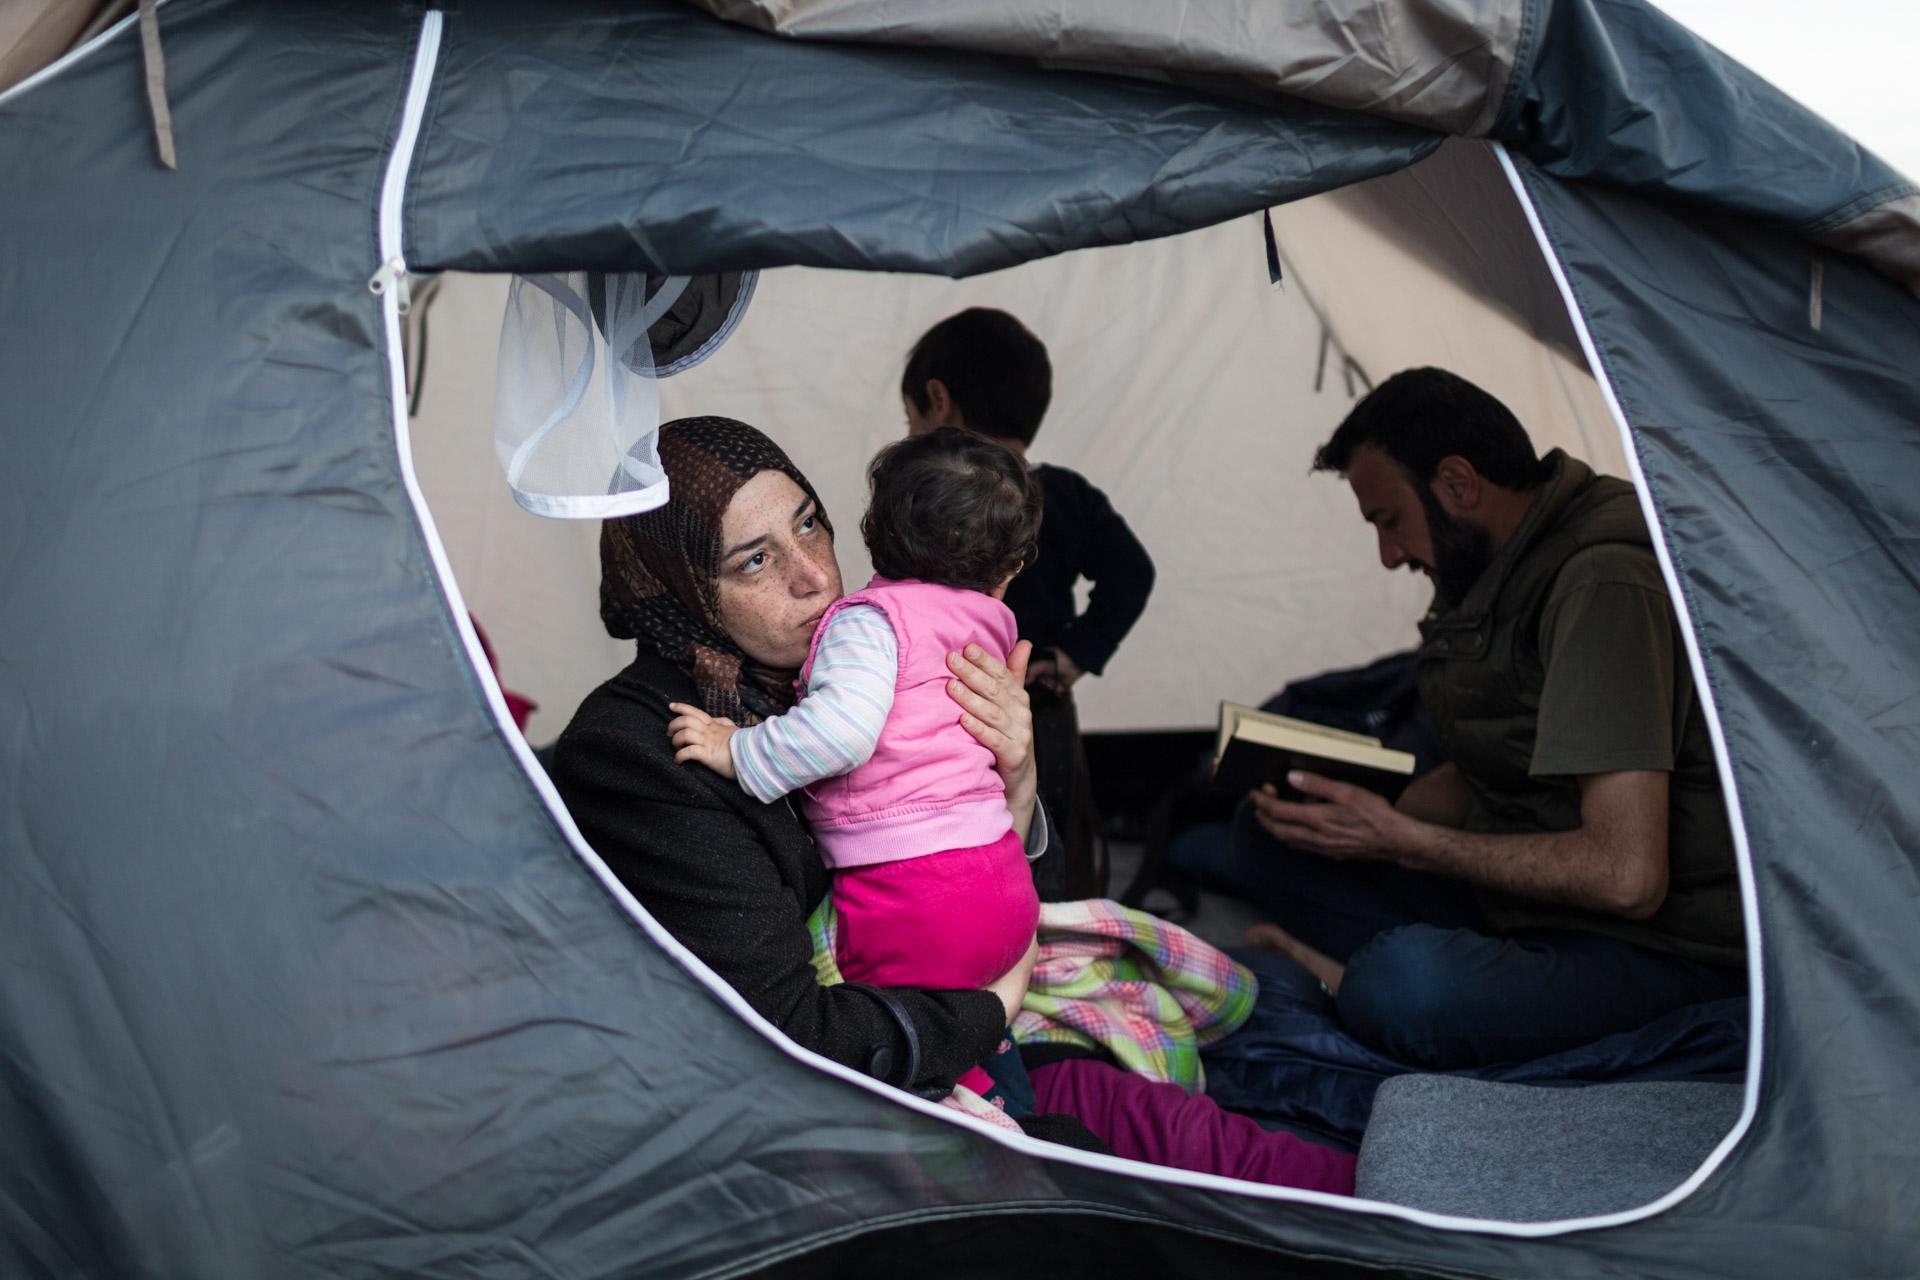 """Khulud, Basem's wife, takes care of Lilly, while Basem reads a Qu'ran in the background. The al-Turkis are Sunni Muslims. In more than two weeks, I never saw them pray once. """"I love it, when my husband reads the Qu'ran"""", says Khulud. """"He is very calm and at peace with himself after reading."""""""